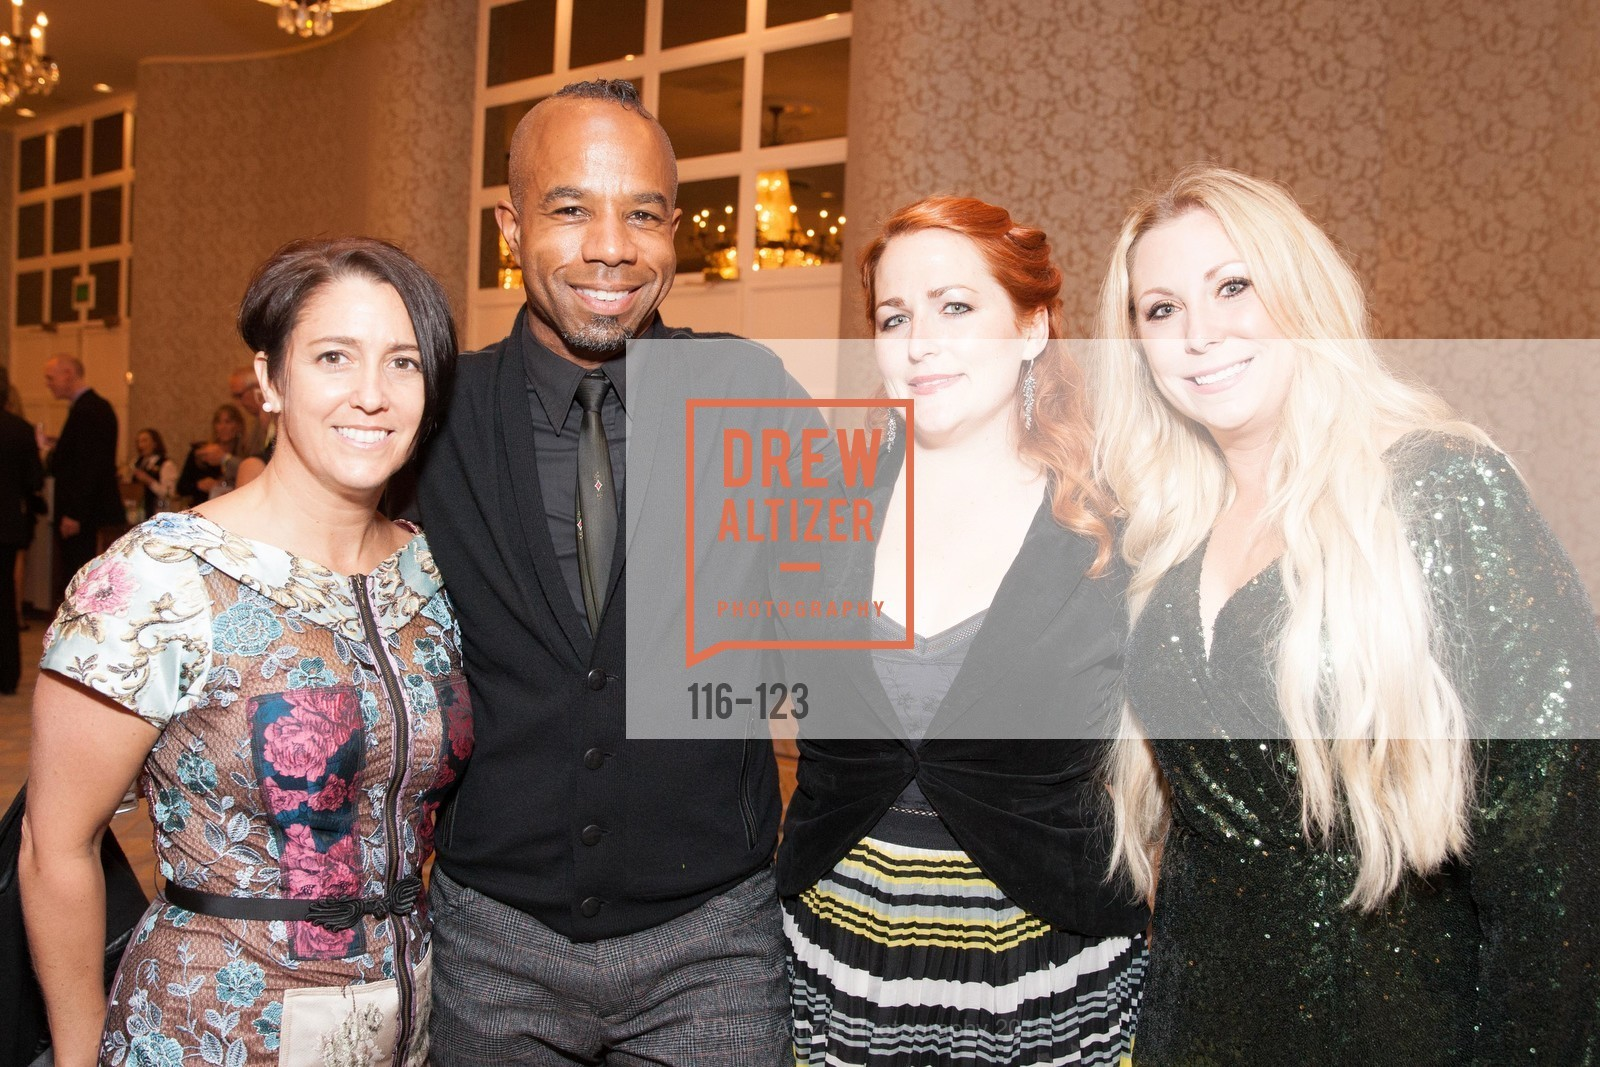 Carolina Data, Reggie Snowden, Renee Pelton, Kyla Naegle, 2015 Boys and Girls Club Annual Gala, The Fairmont San Francisco. 950 Mason St, May 20th, 2015,Drew Altizer, Drew Altizer Photography, full-service agency, private events, San Francisco photographer, photographer california